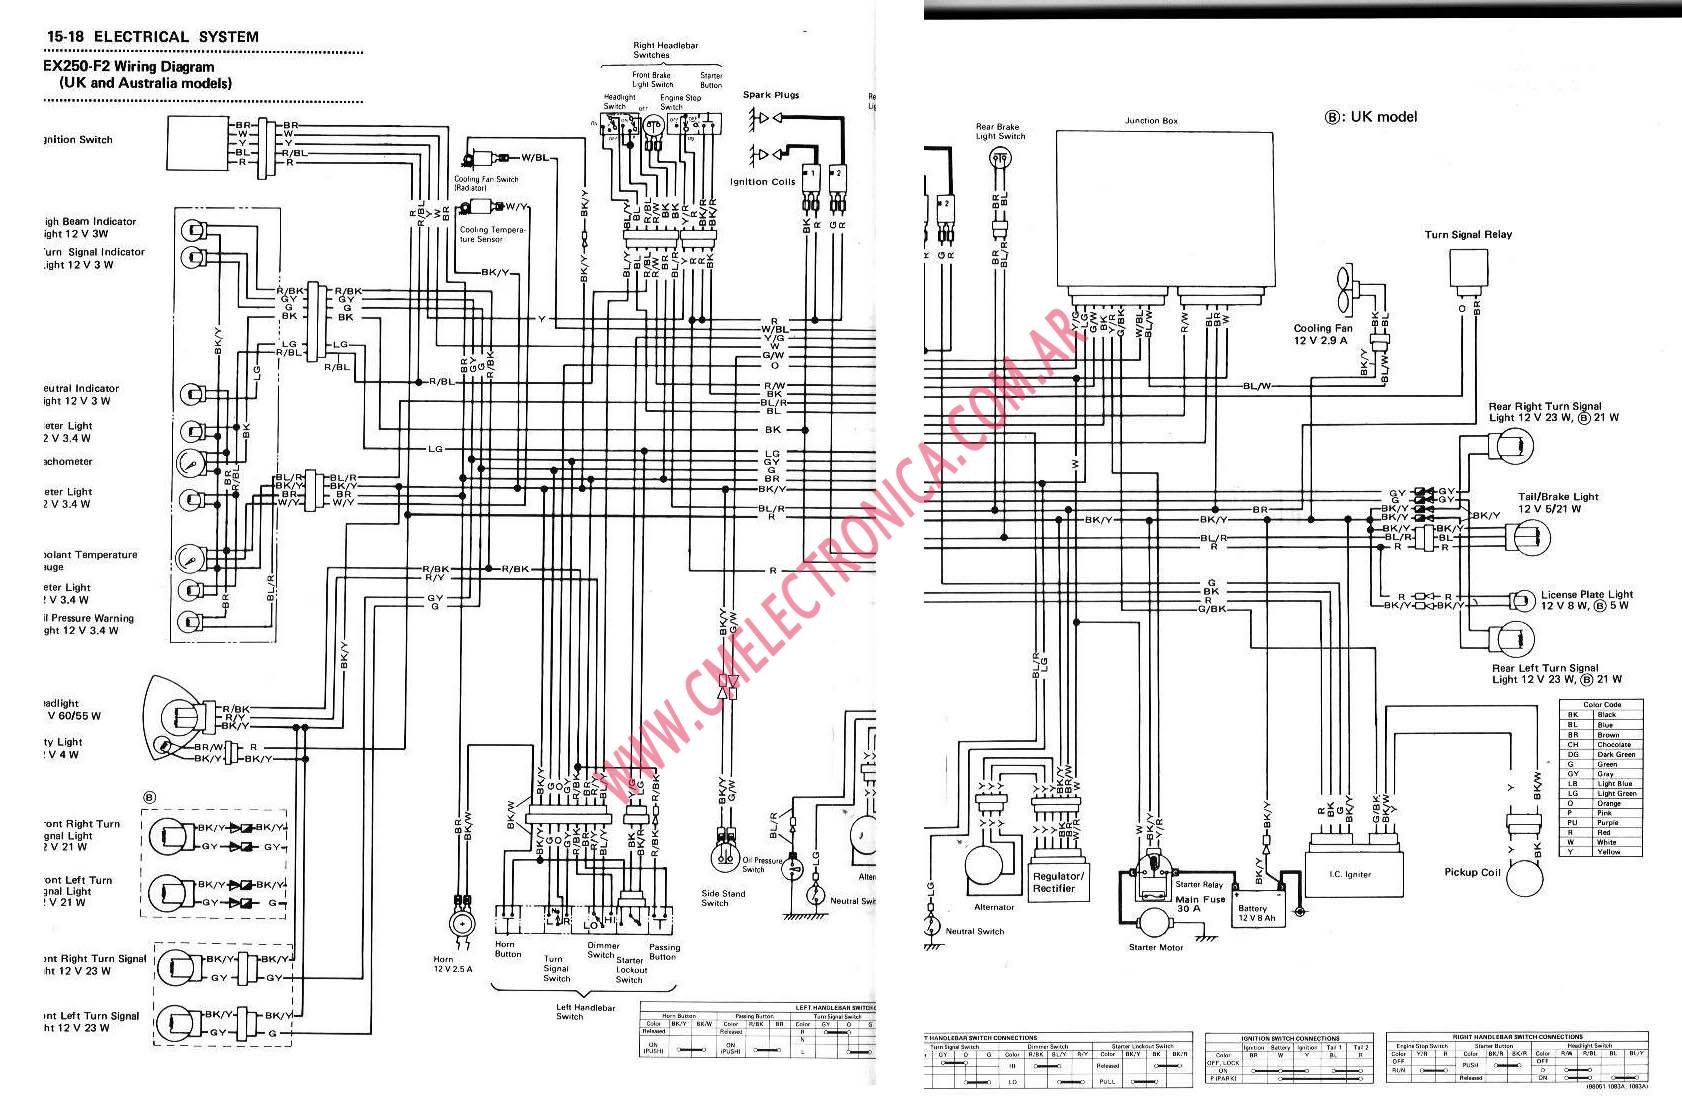 Wiring Diagram Kawasaki Mule 2510 | Wiring Diagram on